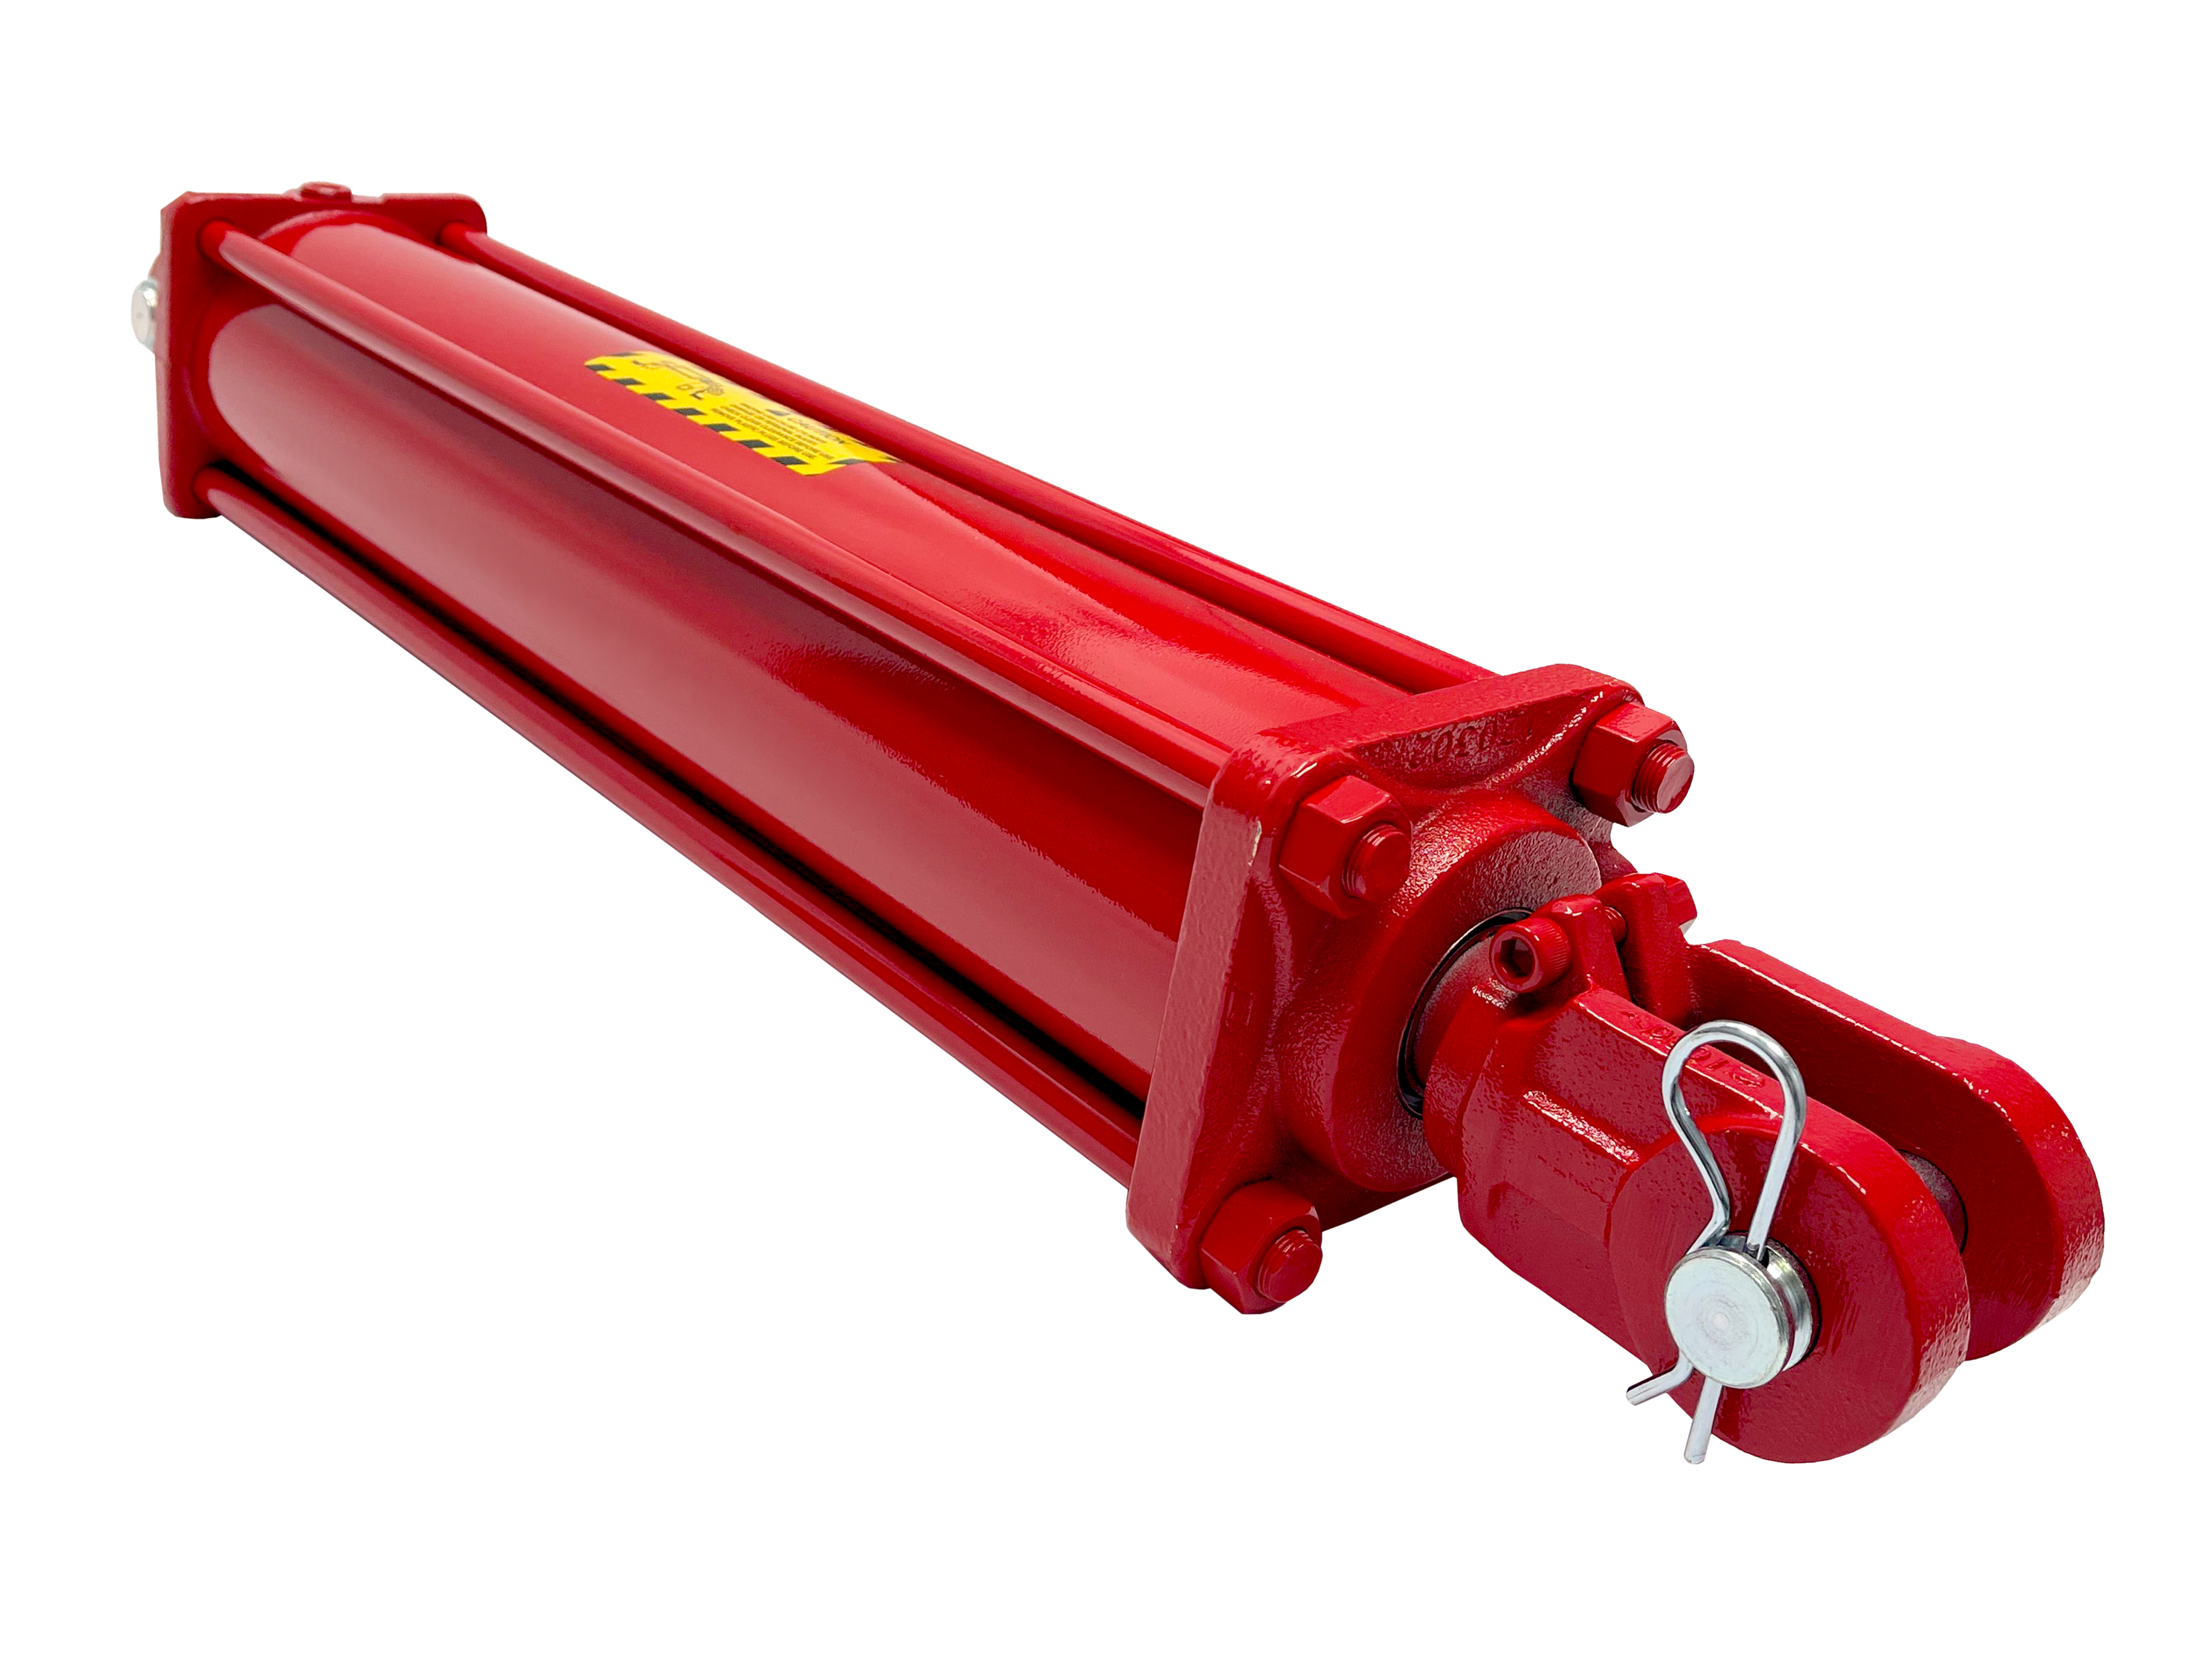 4 bore x 36 stroke CROSS hydraulic cylinder, tie rod double acting cylinder DB series | CROSS MANUFACTURING